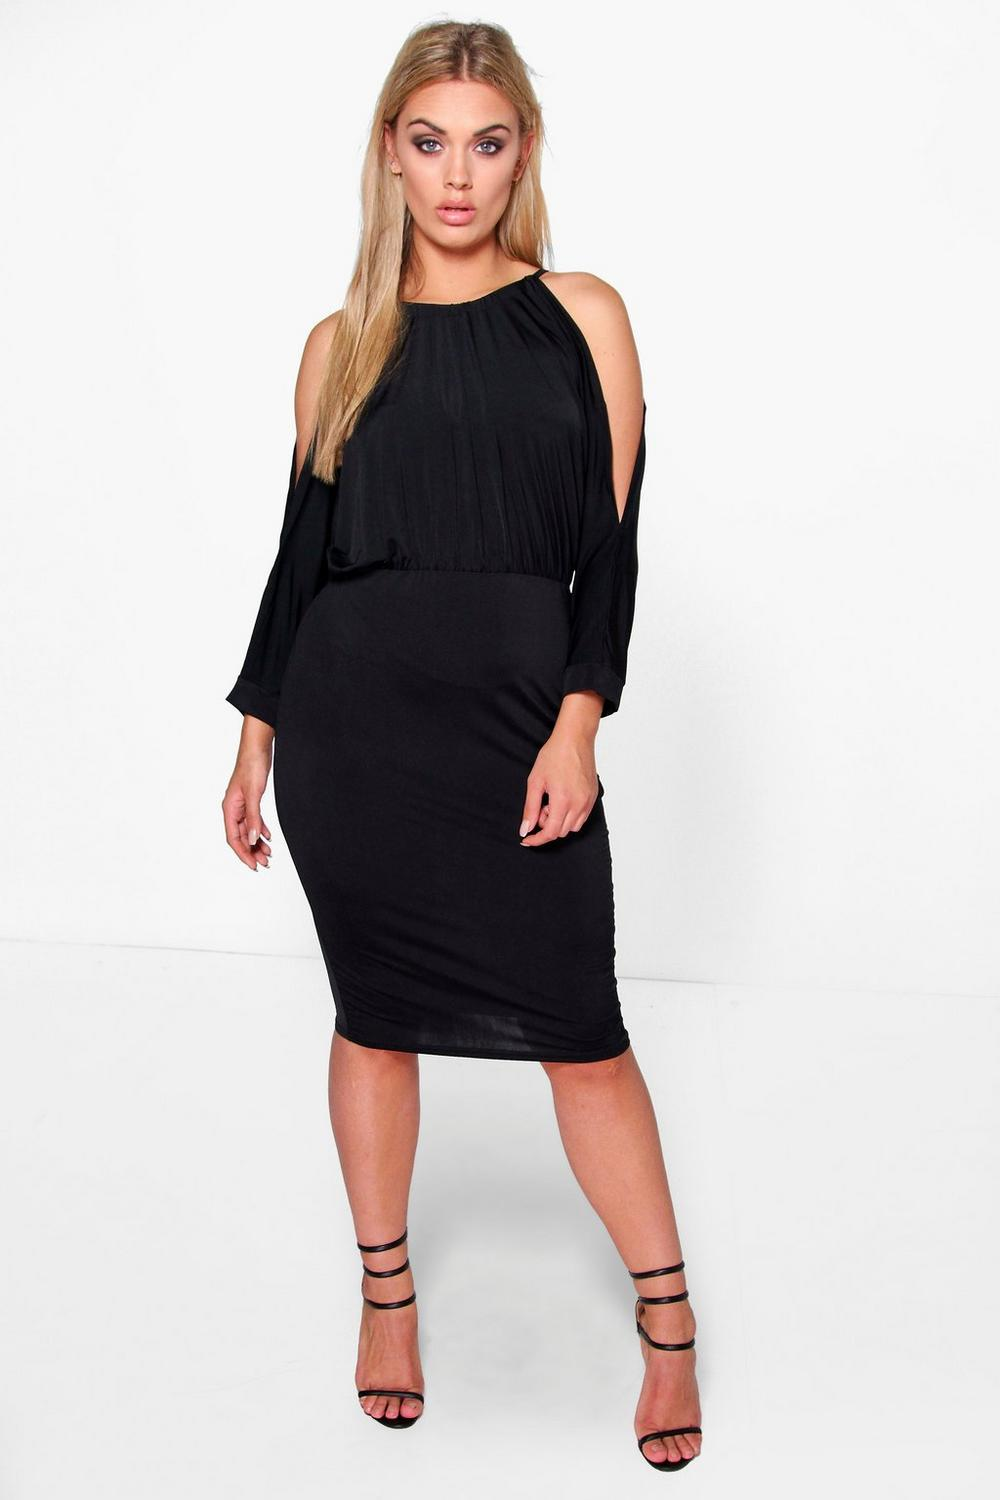 NEW-Boohoo-Womens-Plus-Cindy-Cut-Out-Shoulder-Slinky-Bodycon-Dress-in-Cotton